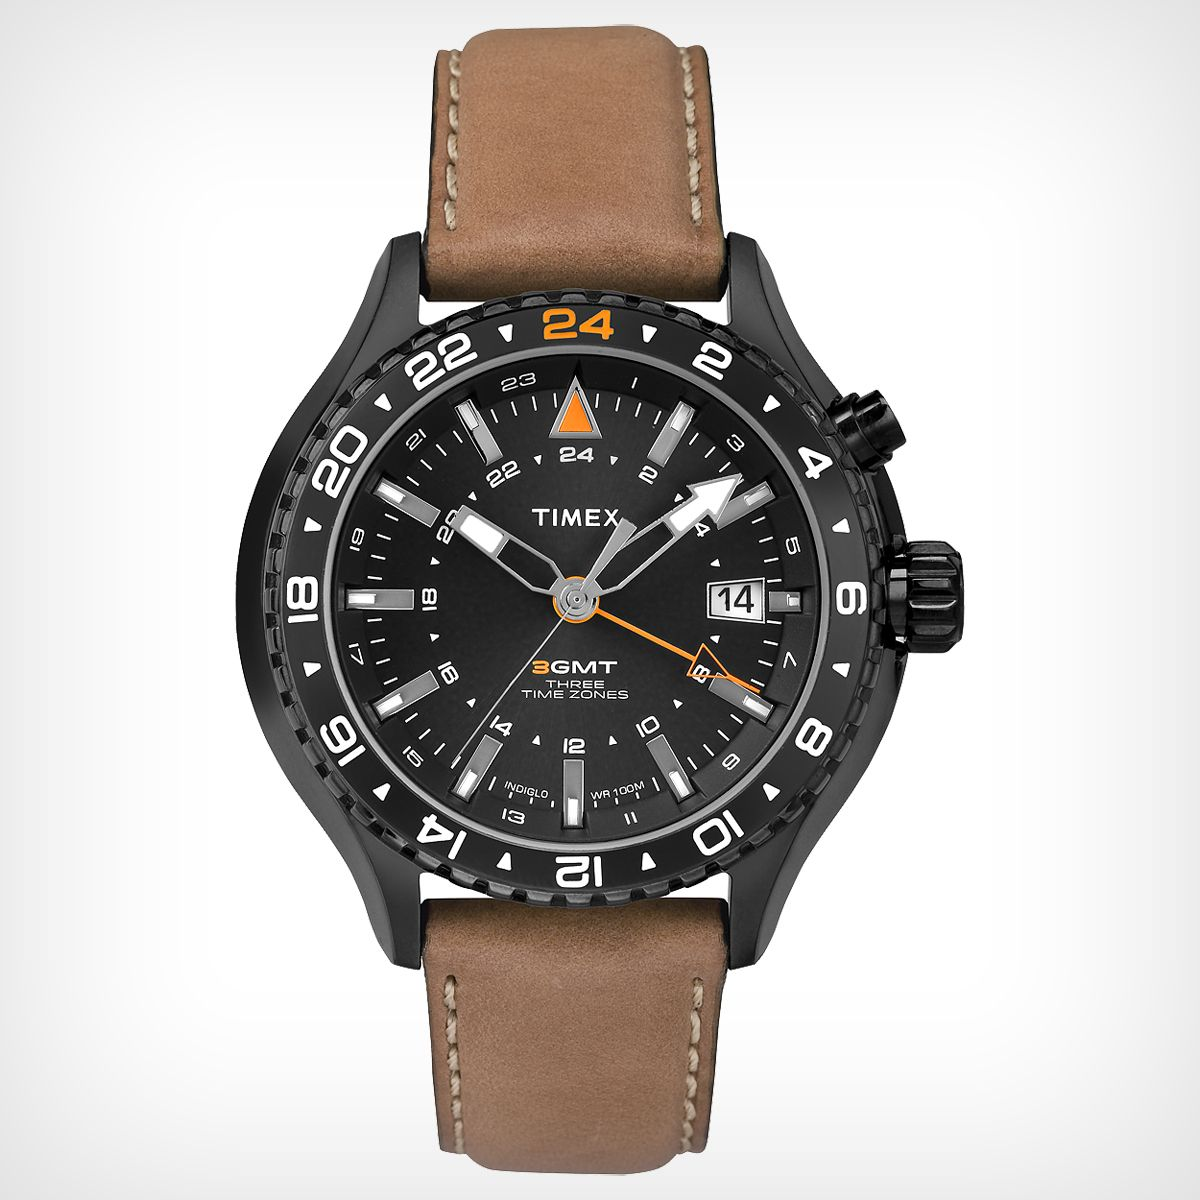 The Unique Fourth Center Hand And Turning Top Ring Allow You To Set A Second And Third Time Brown Leather Strap Watch Mens Watches Leather Brown Leather Watch